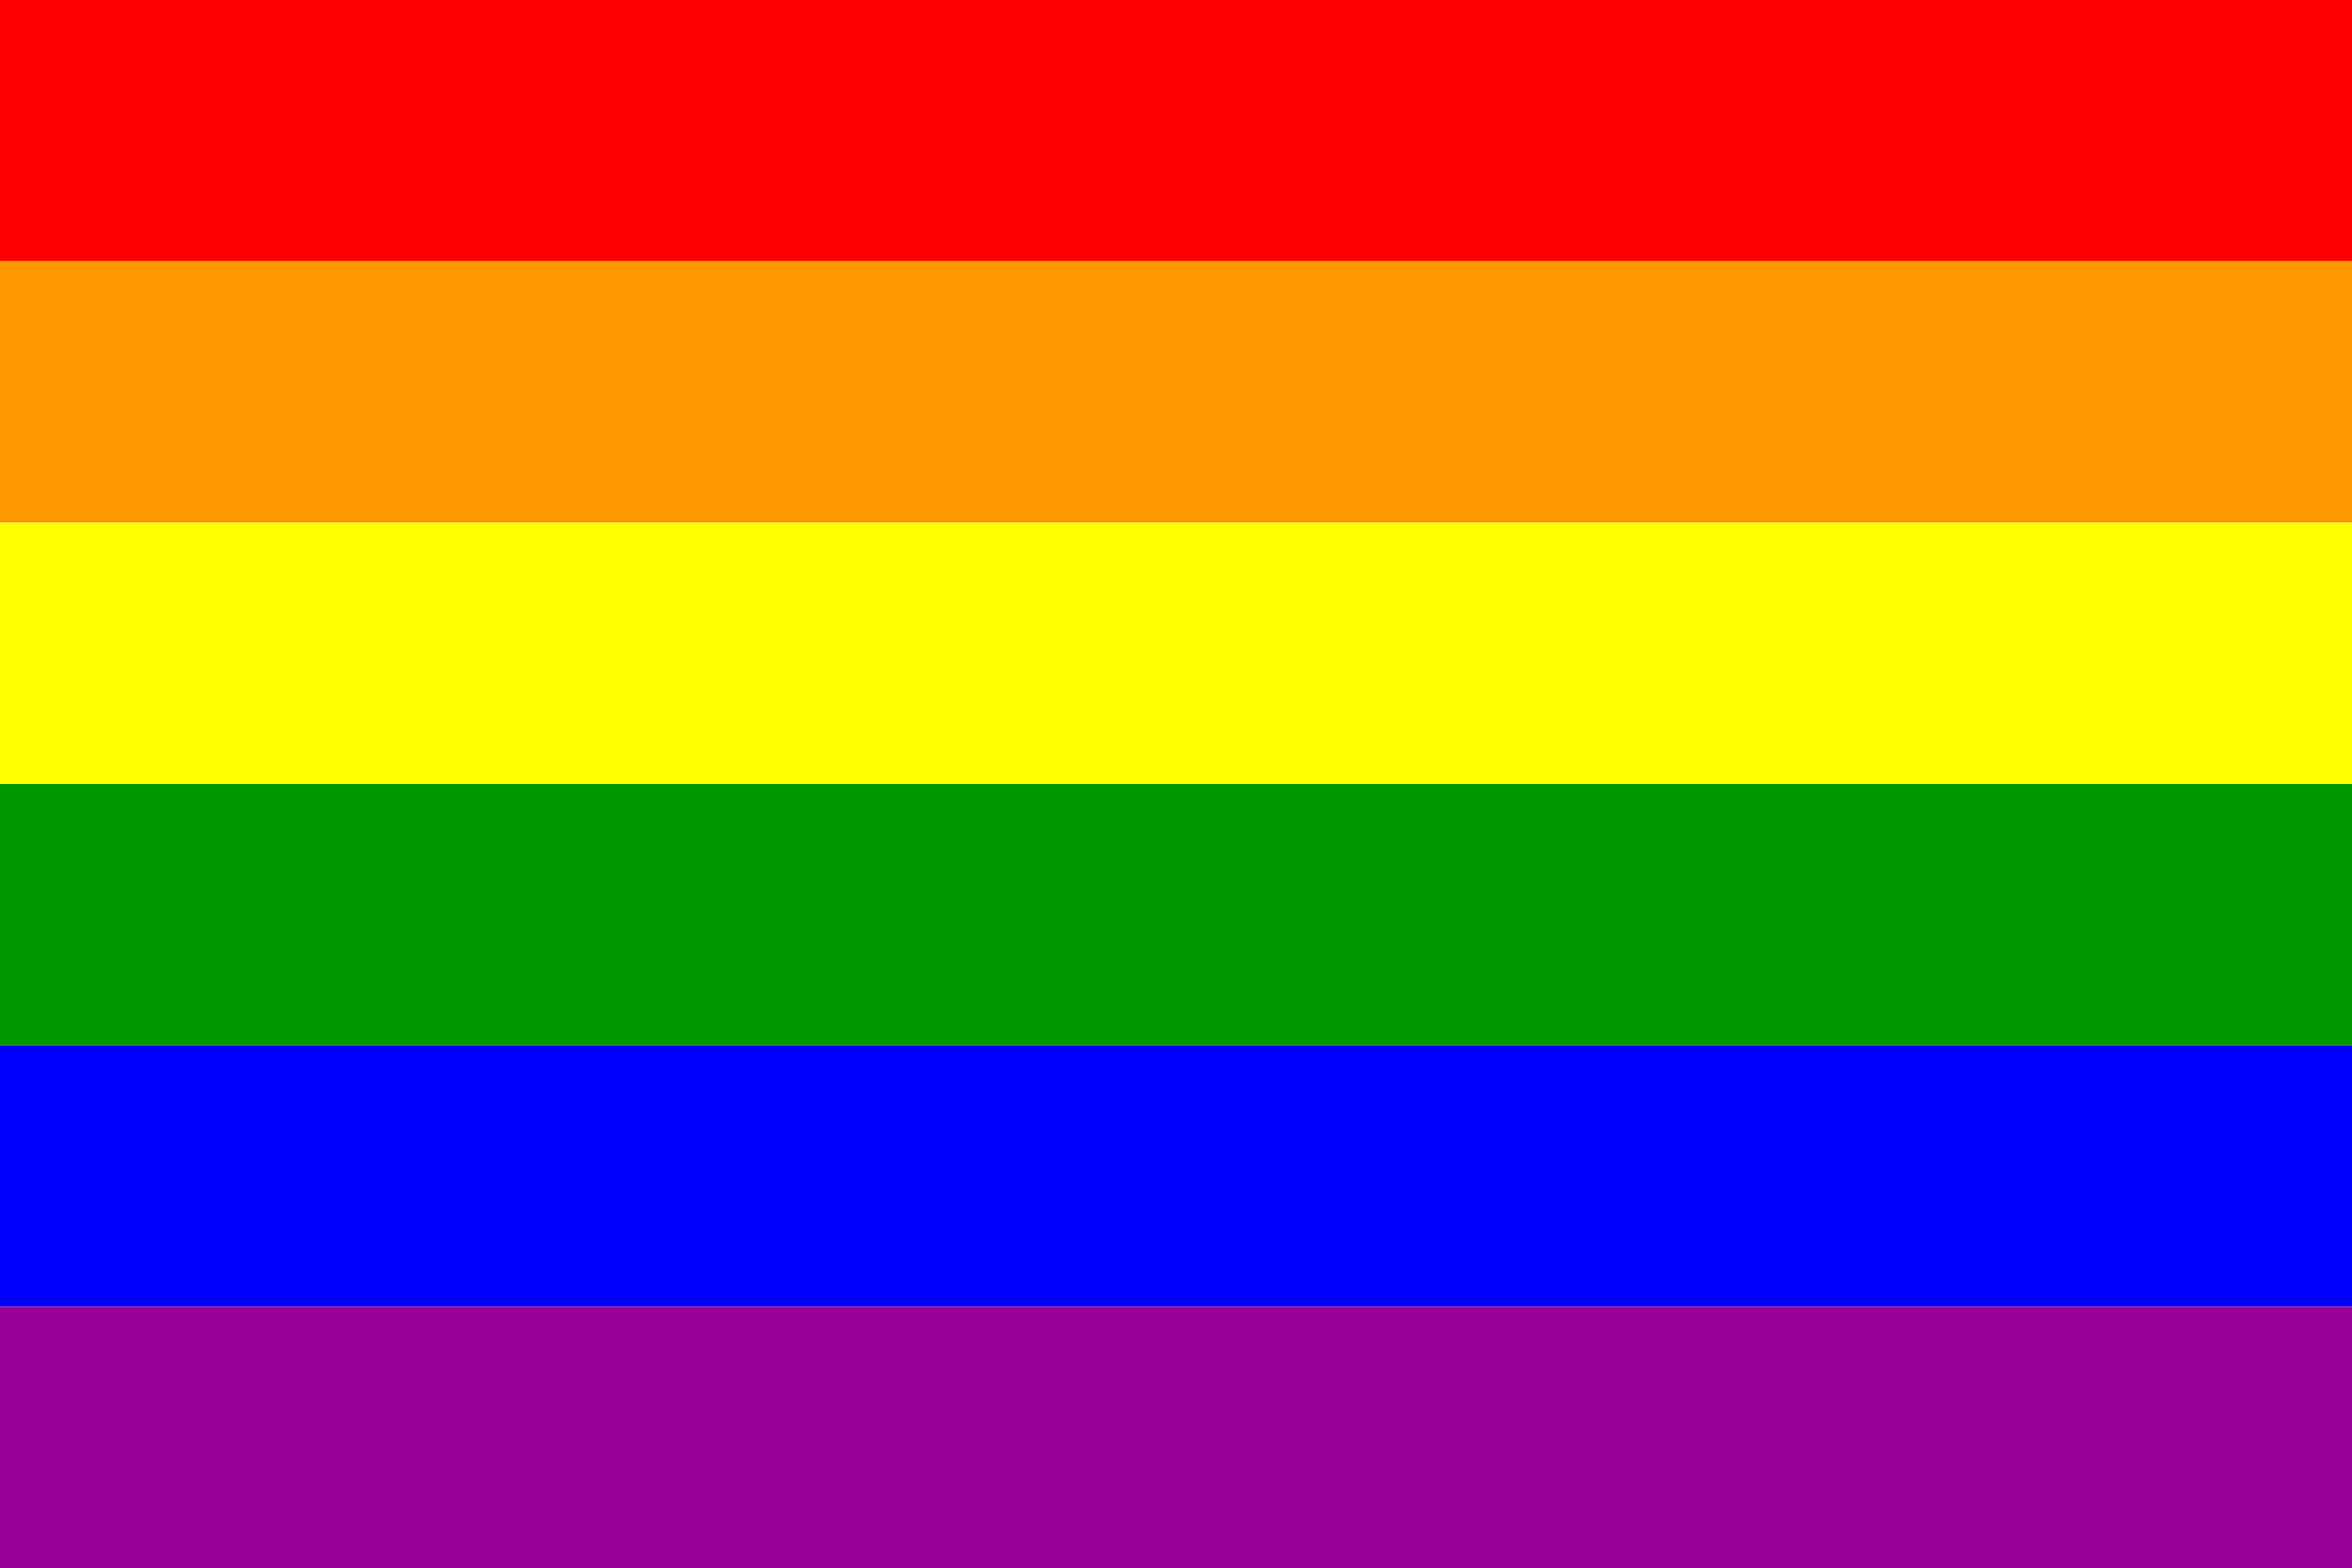 The Gay Pride Rainbow Flag by AdamStanislav